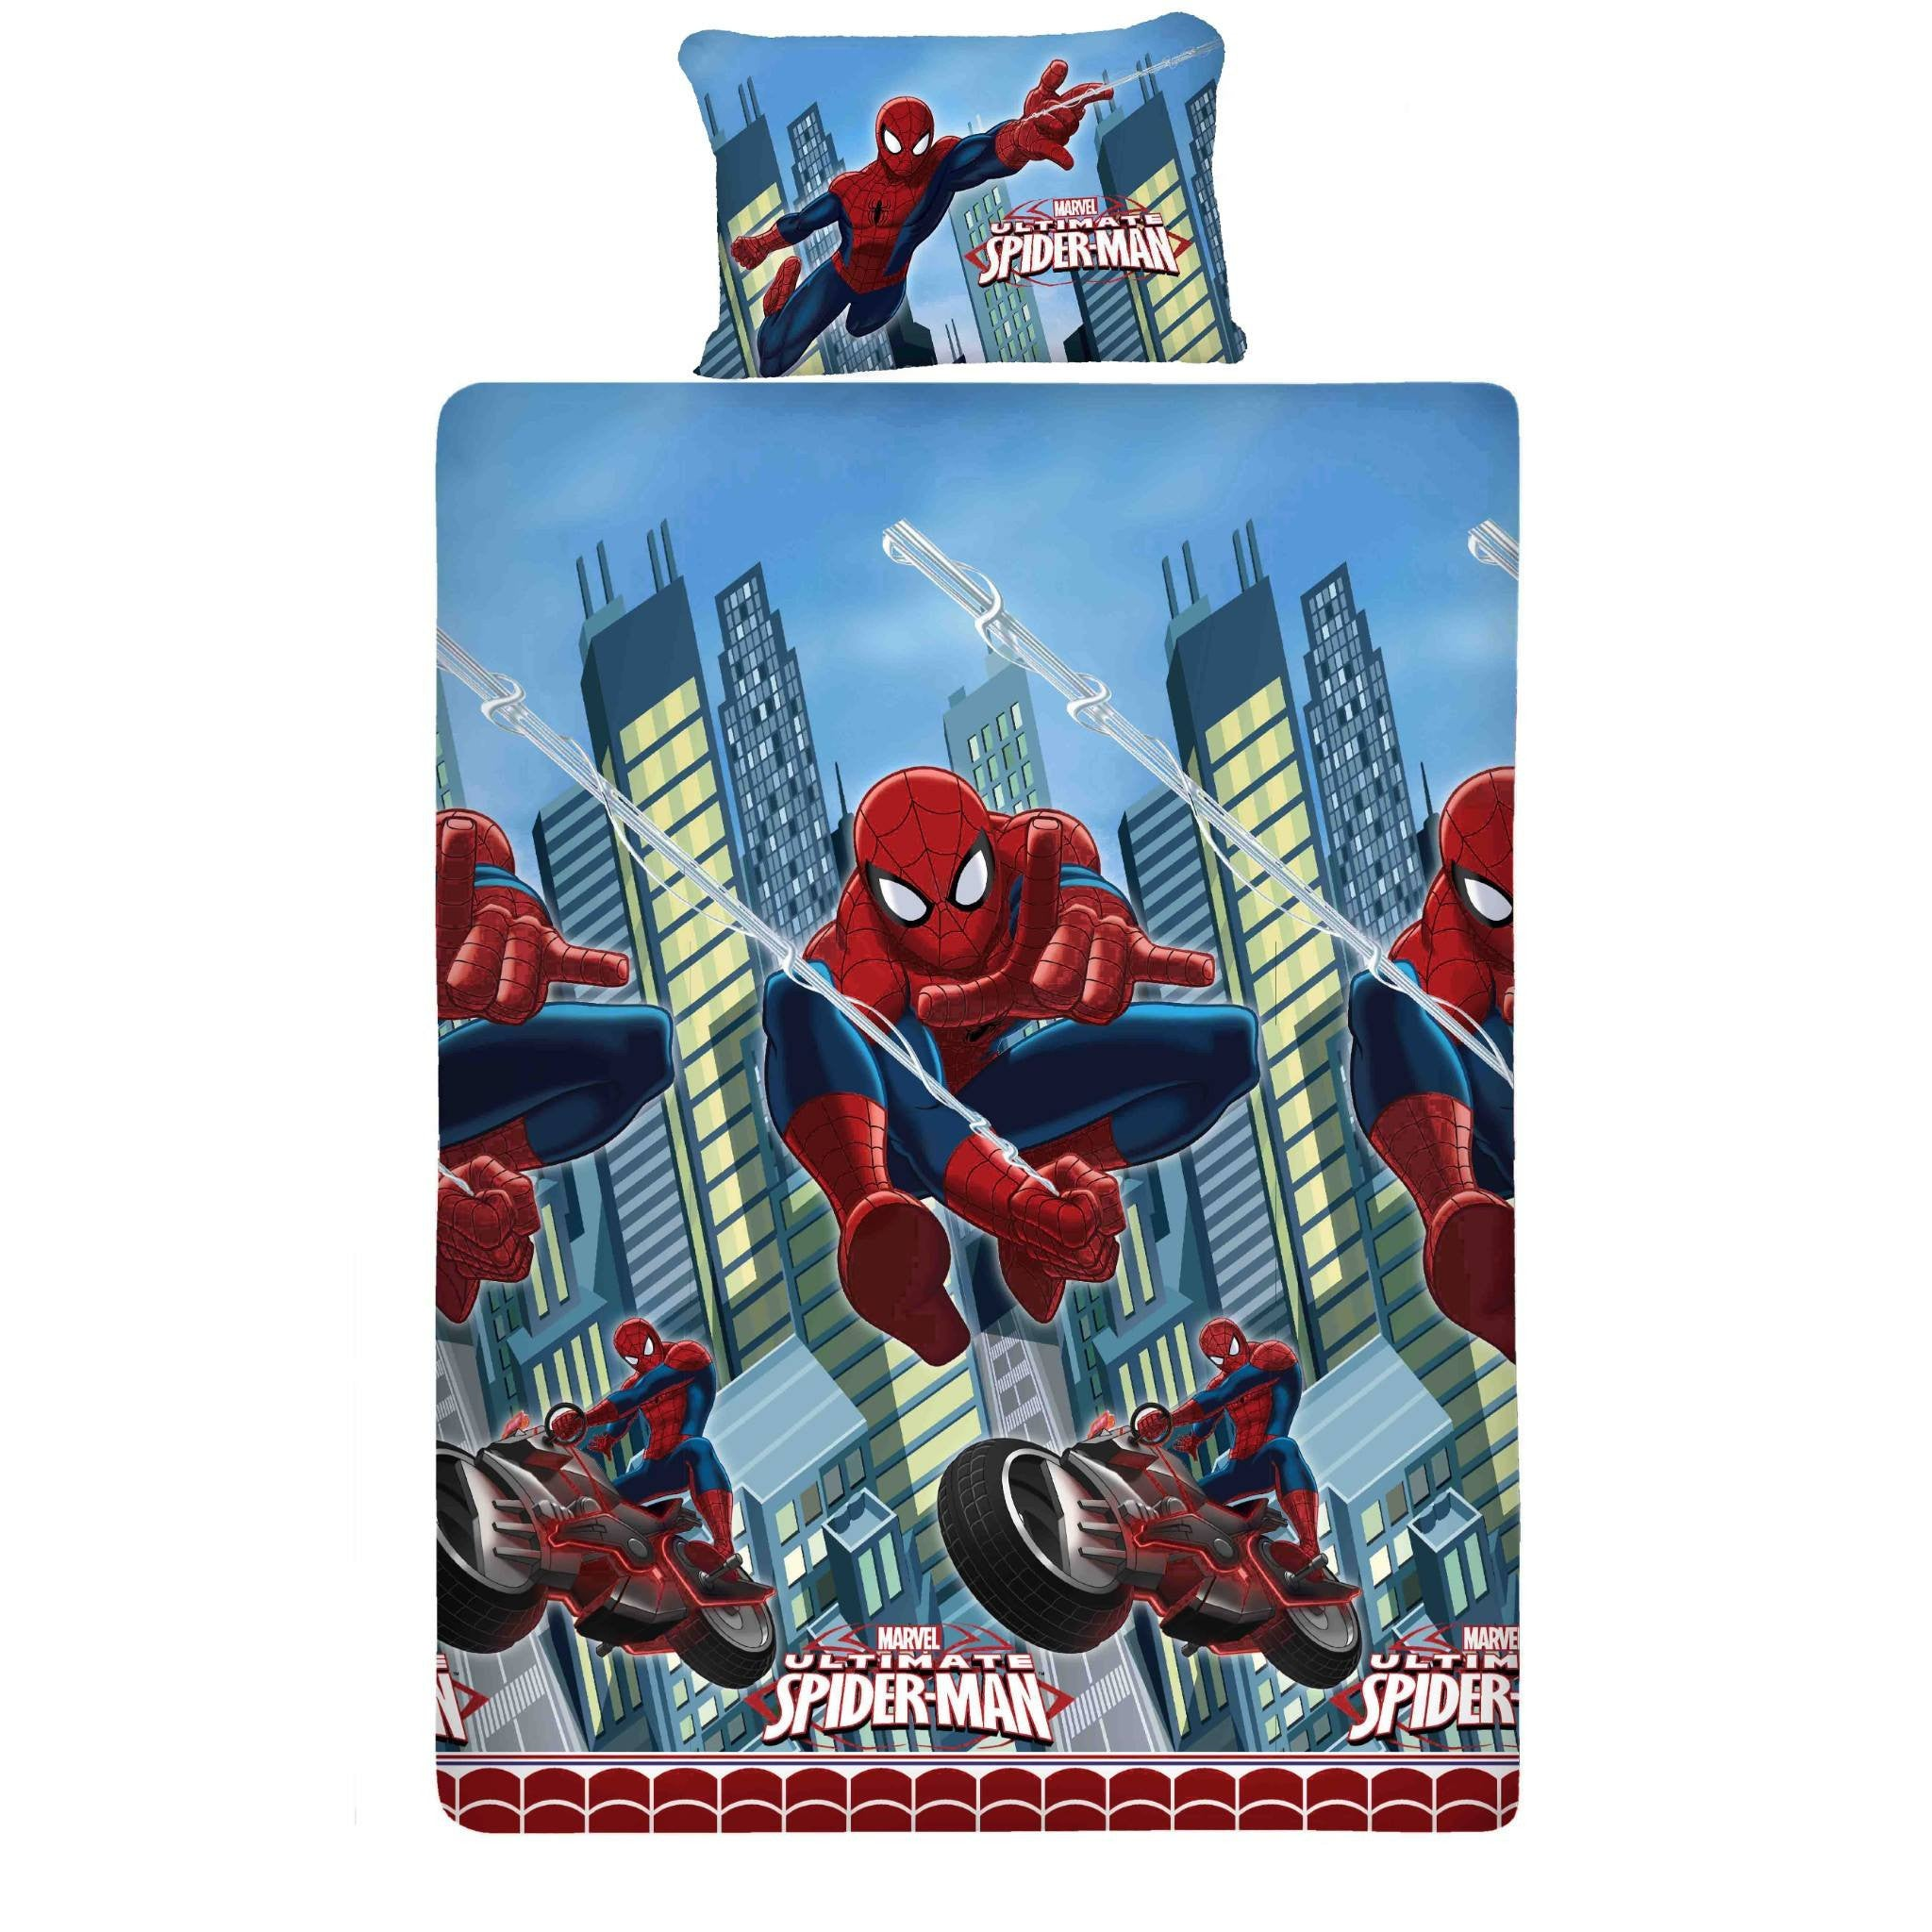 Spiderman Flying Single Bed Sheet And Pillow Cover Top View